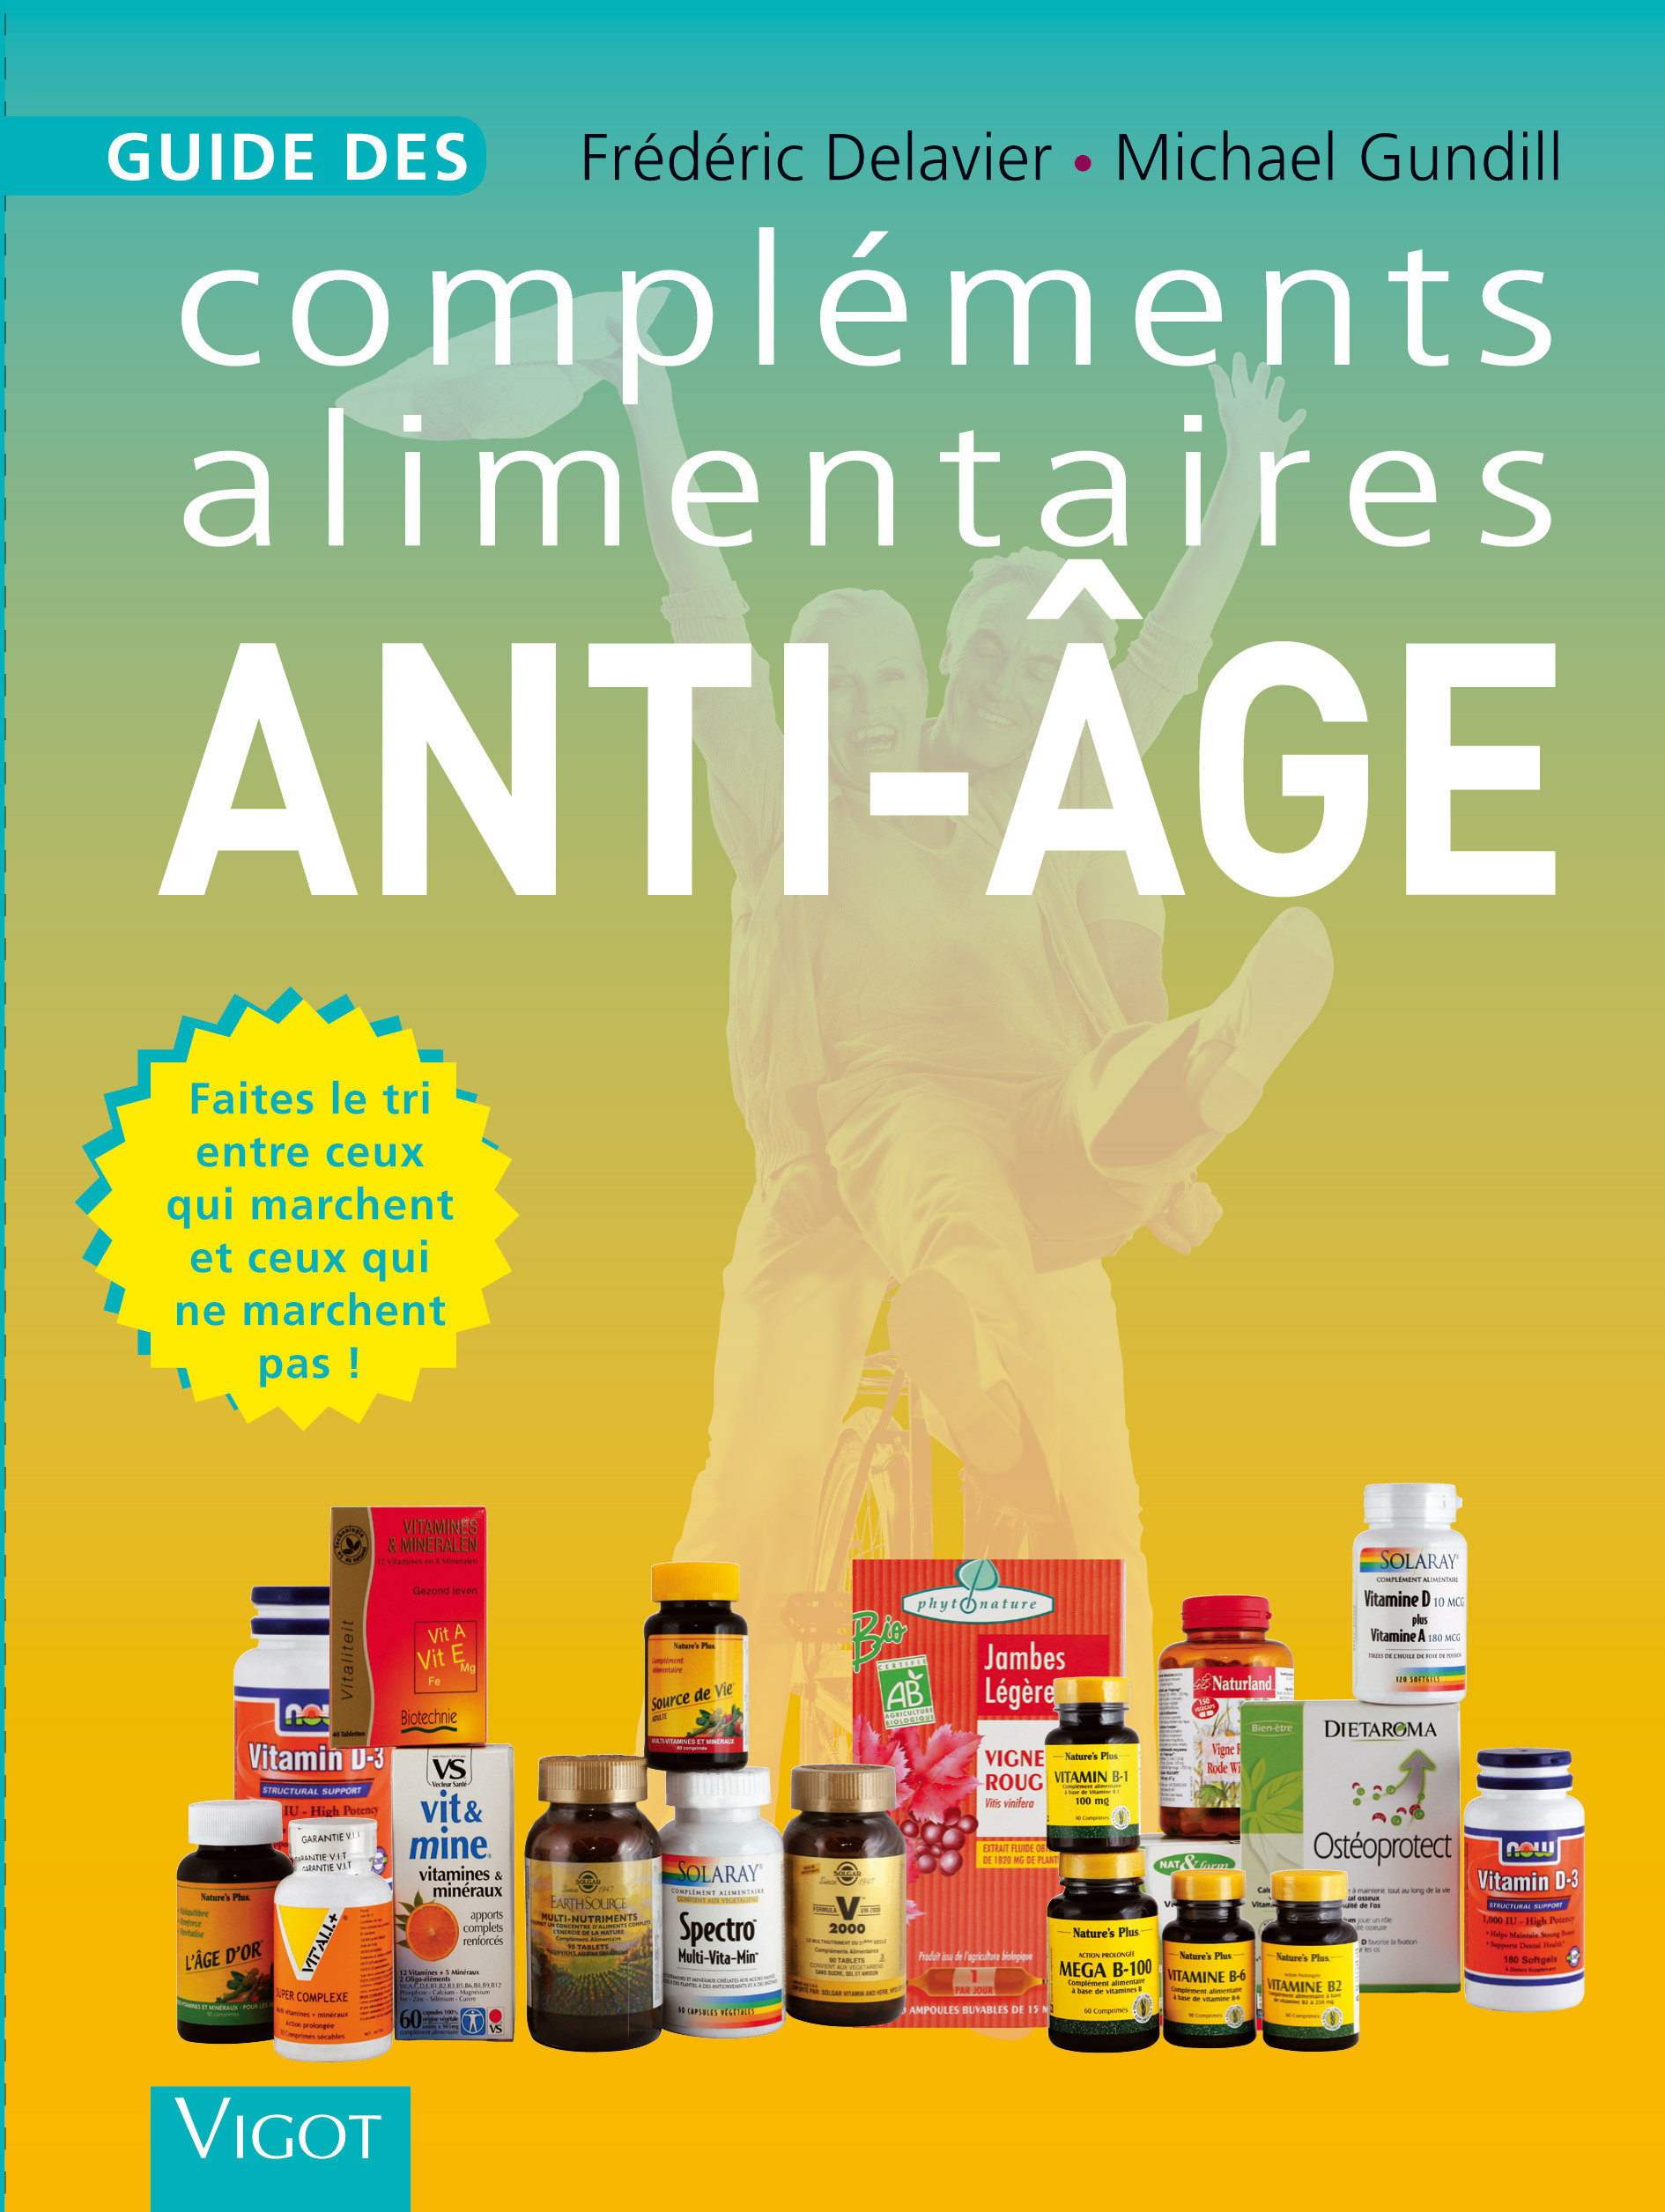 GUIDE DES COMPLEMENTS ALIMENTAIRES ANTI